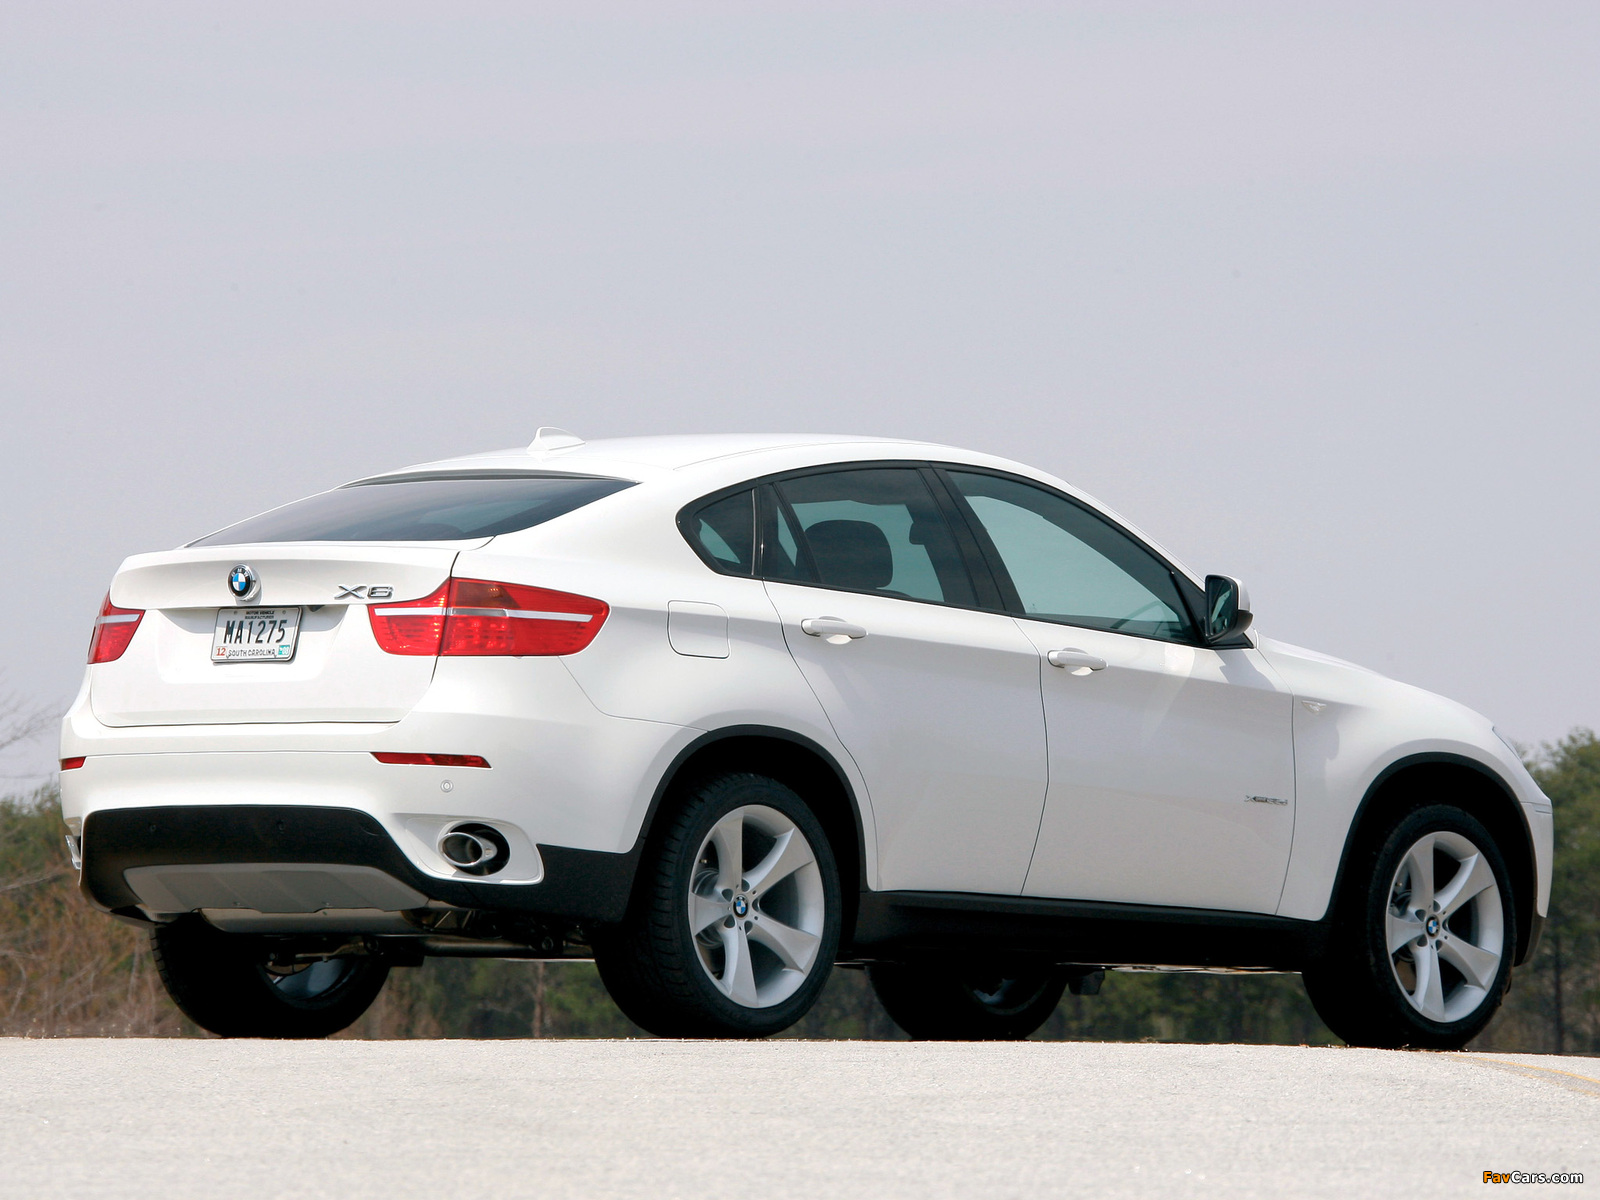 Bmw X6 Xdrive35d 71 2008 Pictures 1600x1200